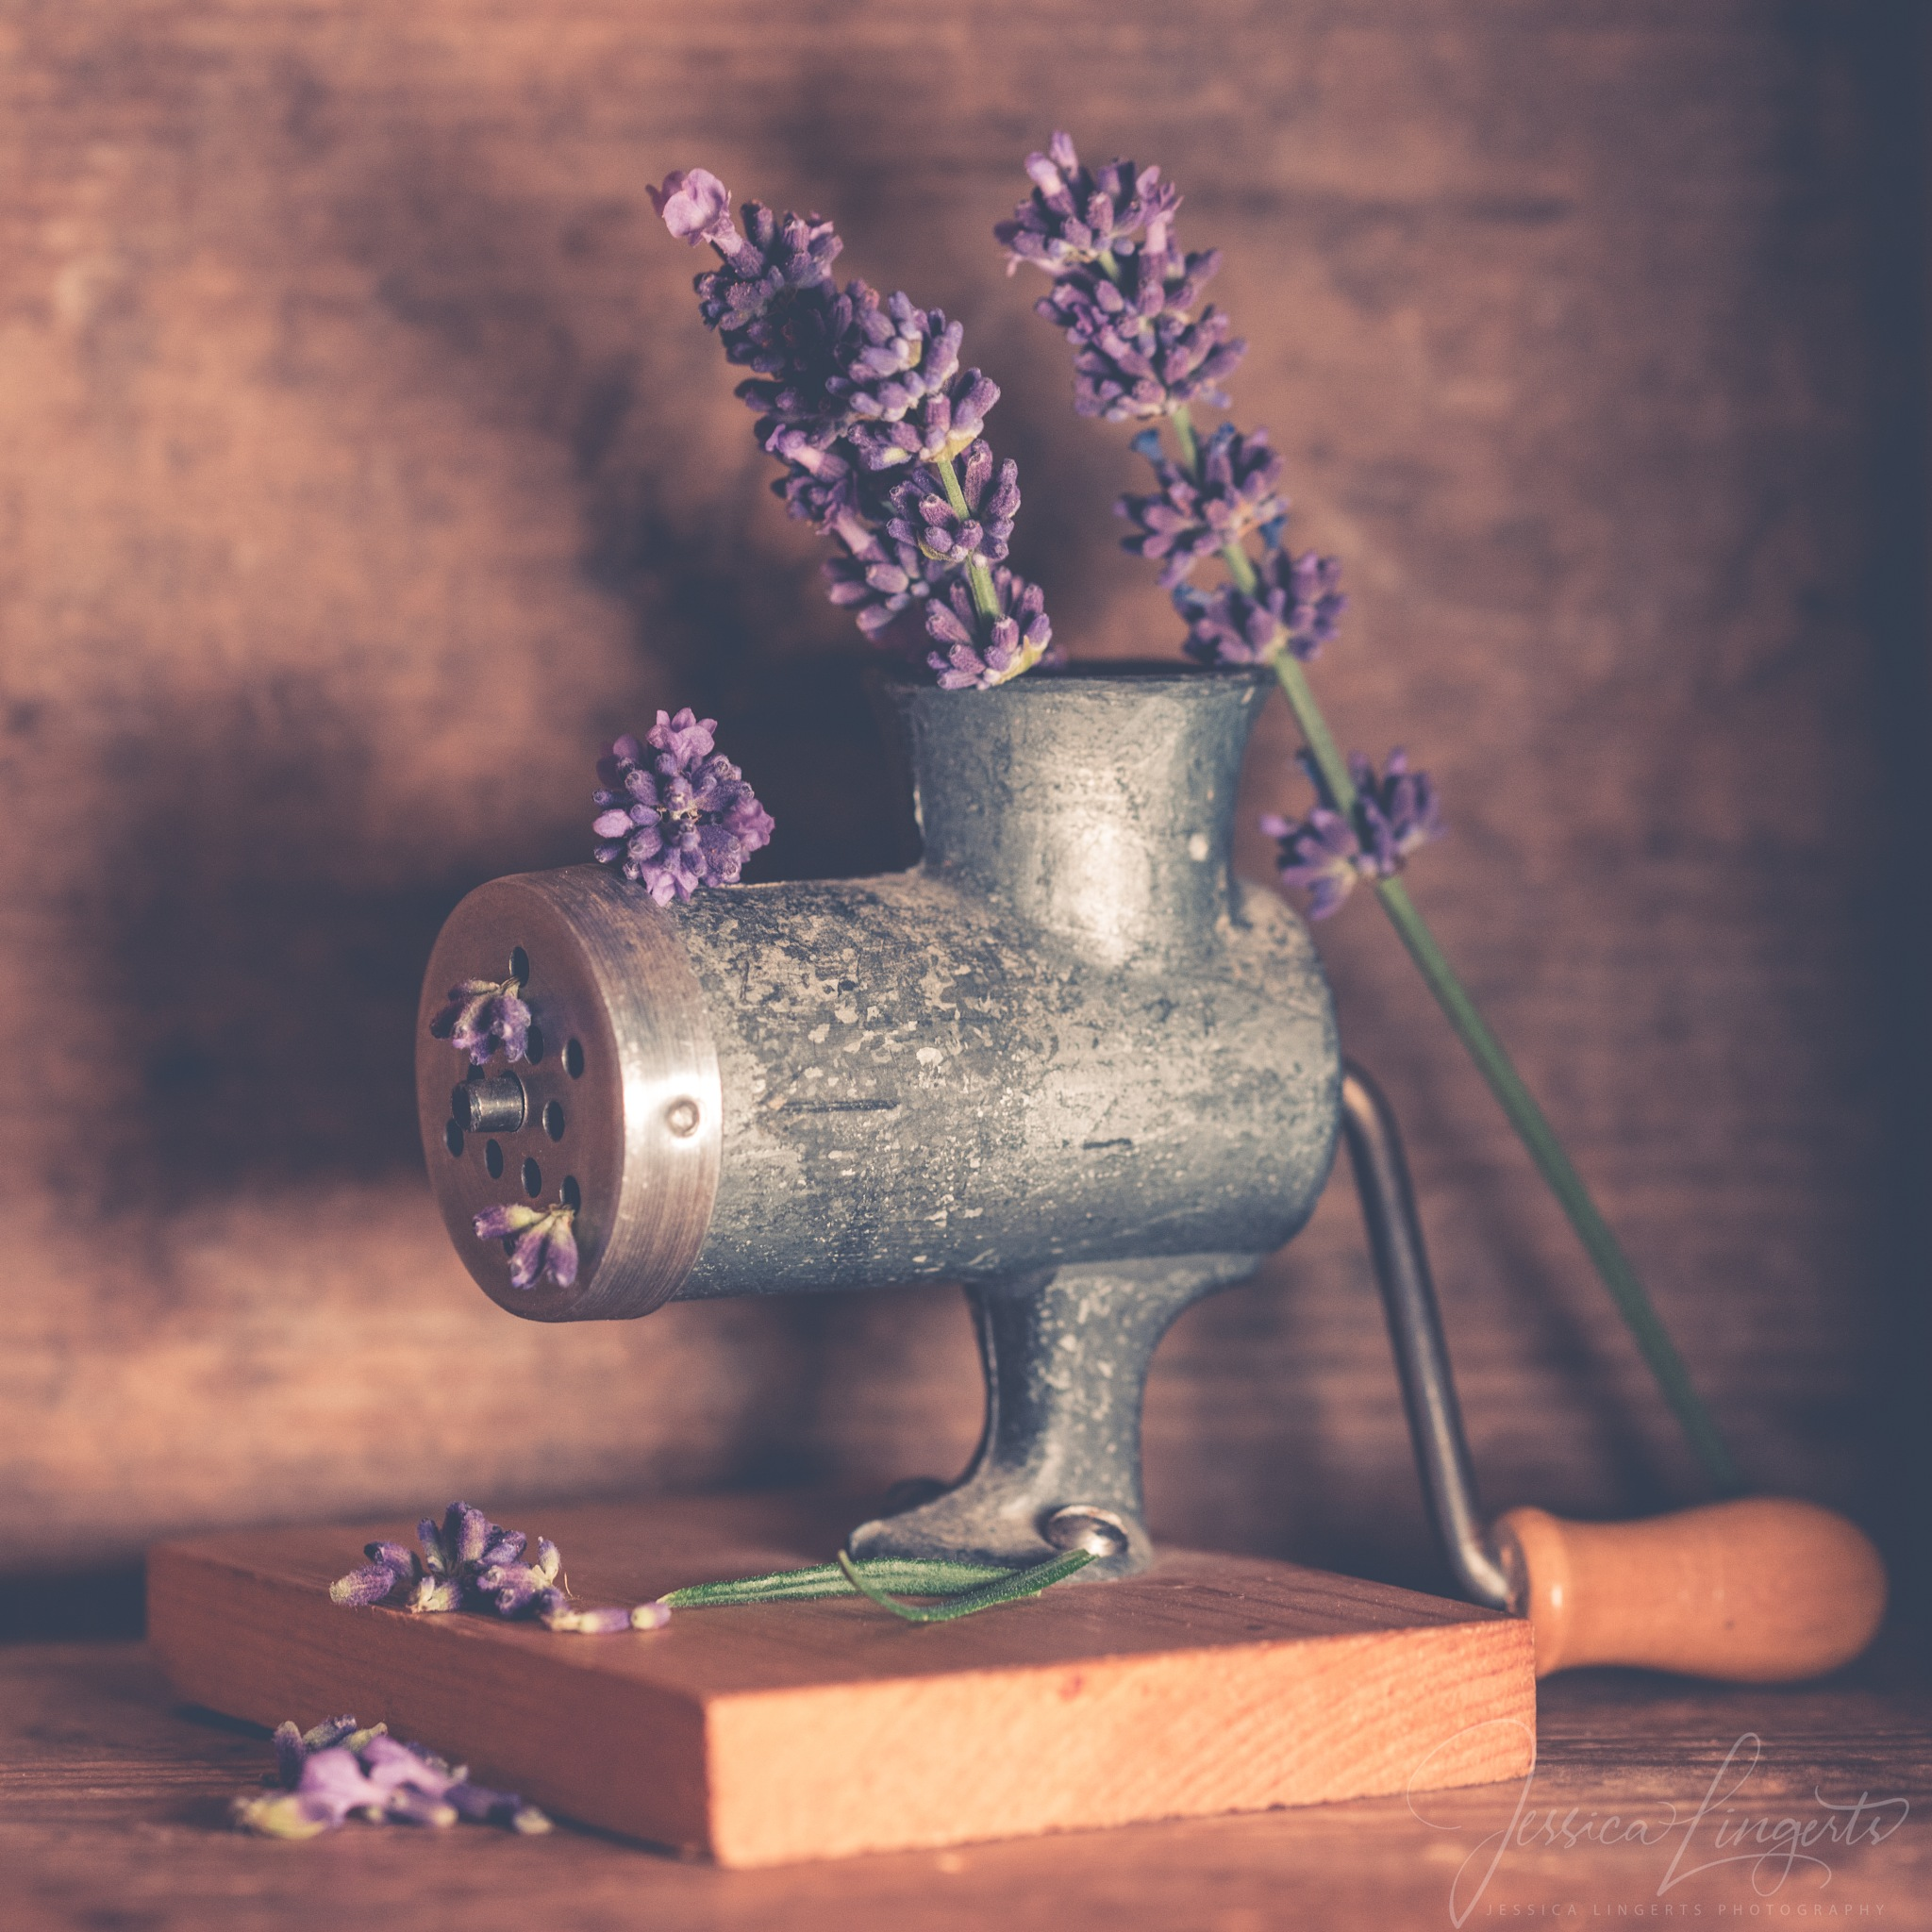 Lovely lavender scent by Jessica Lingerts